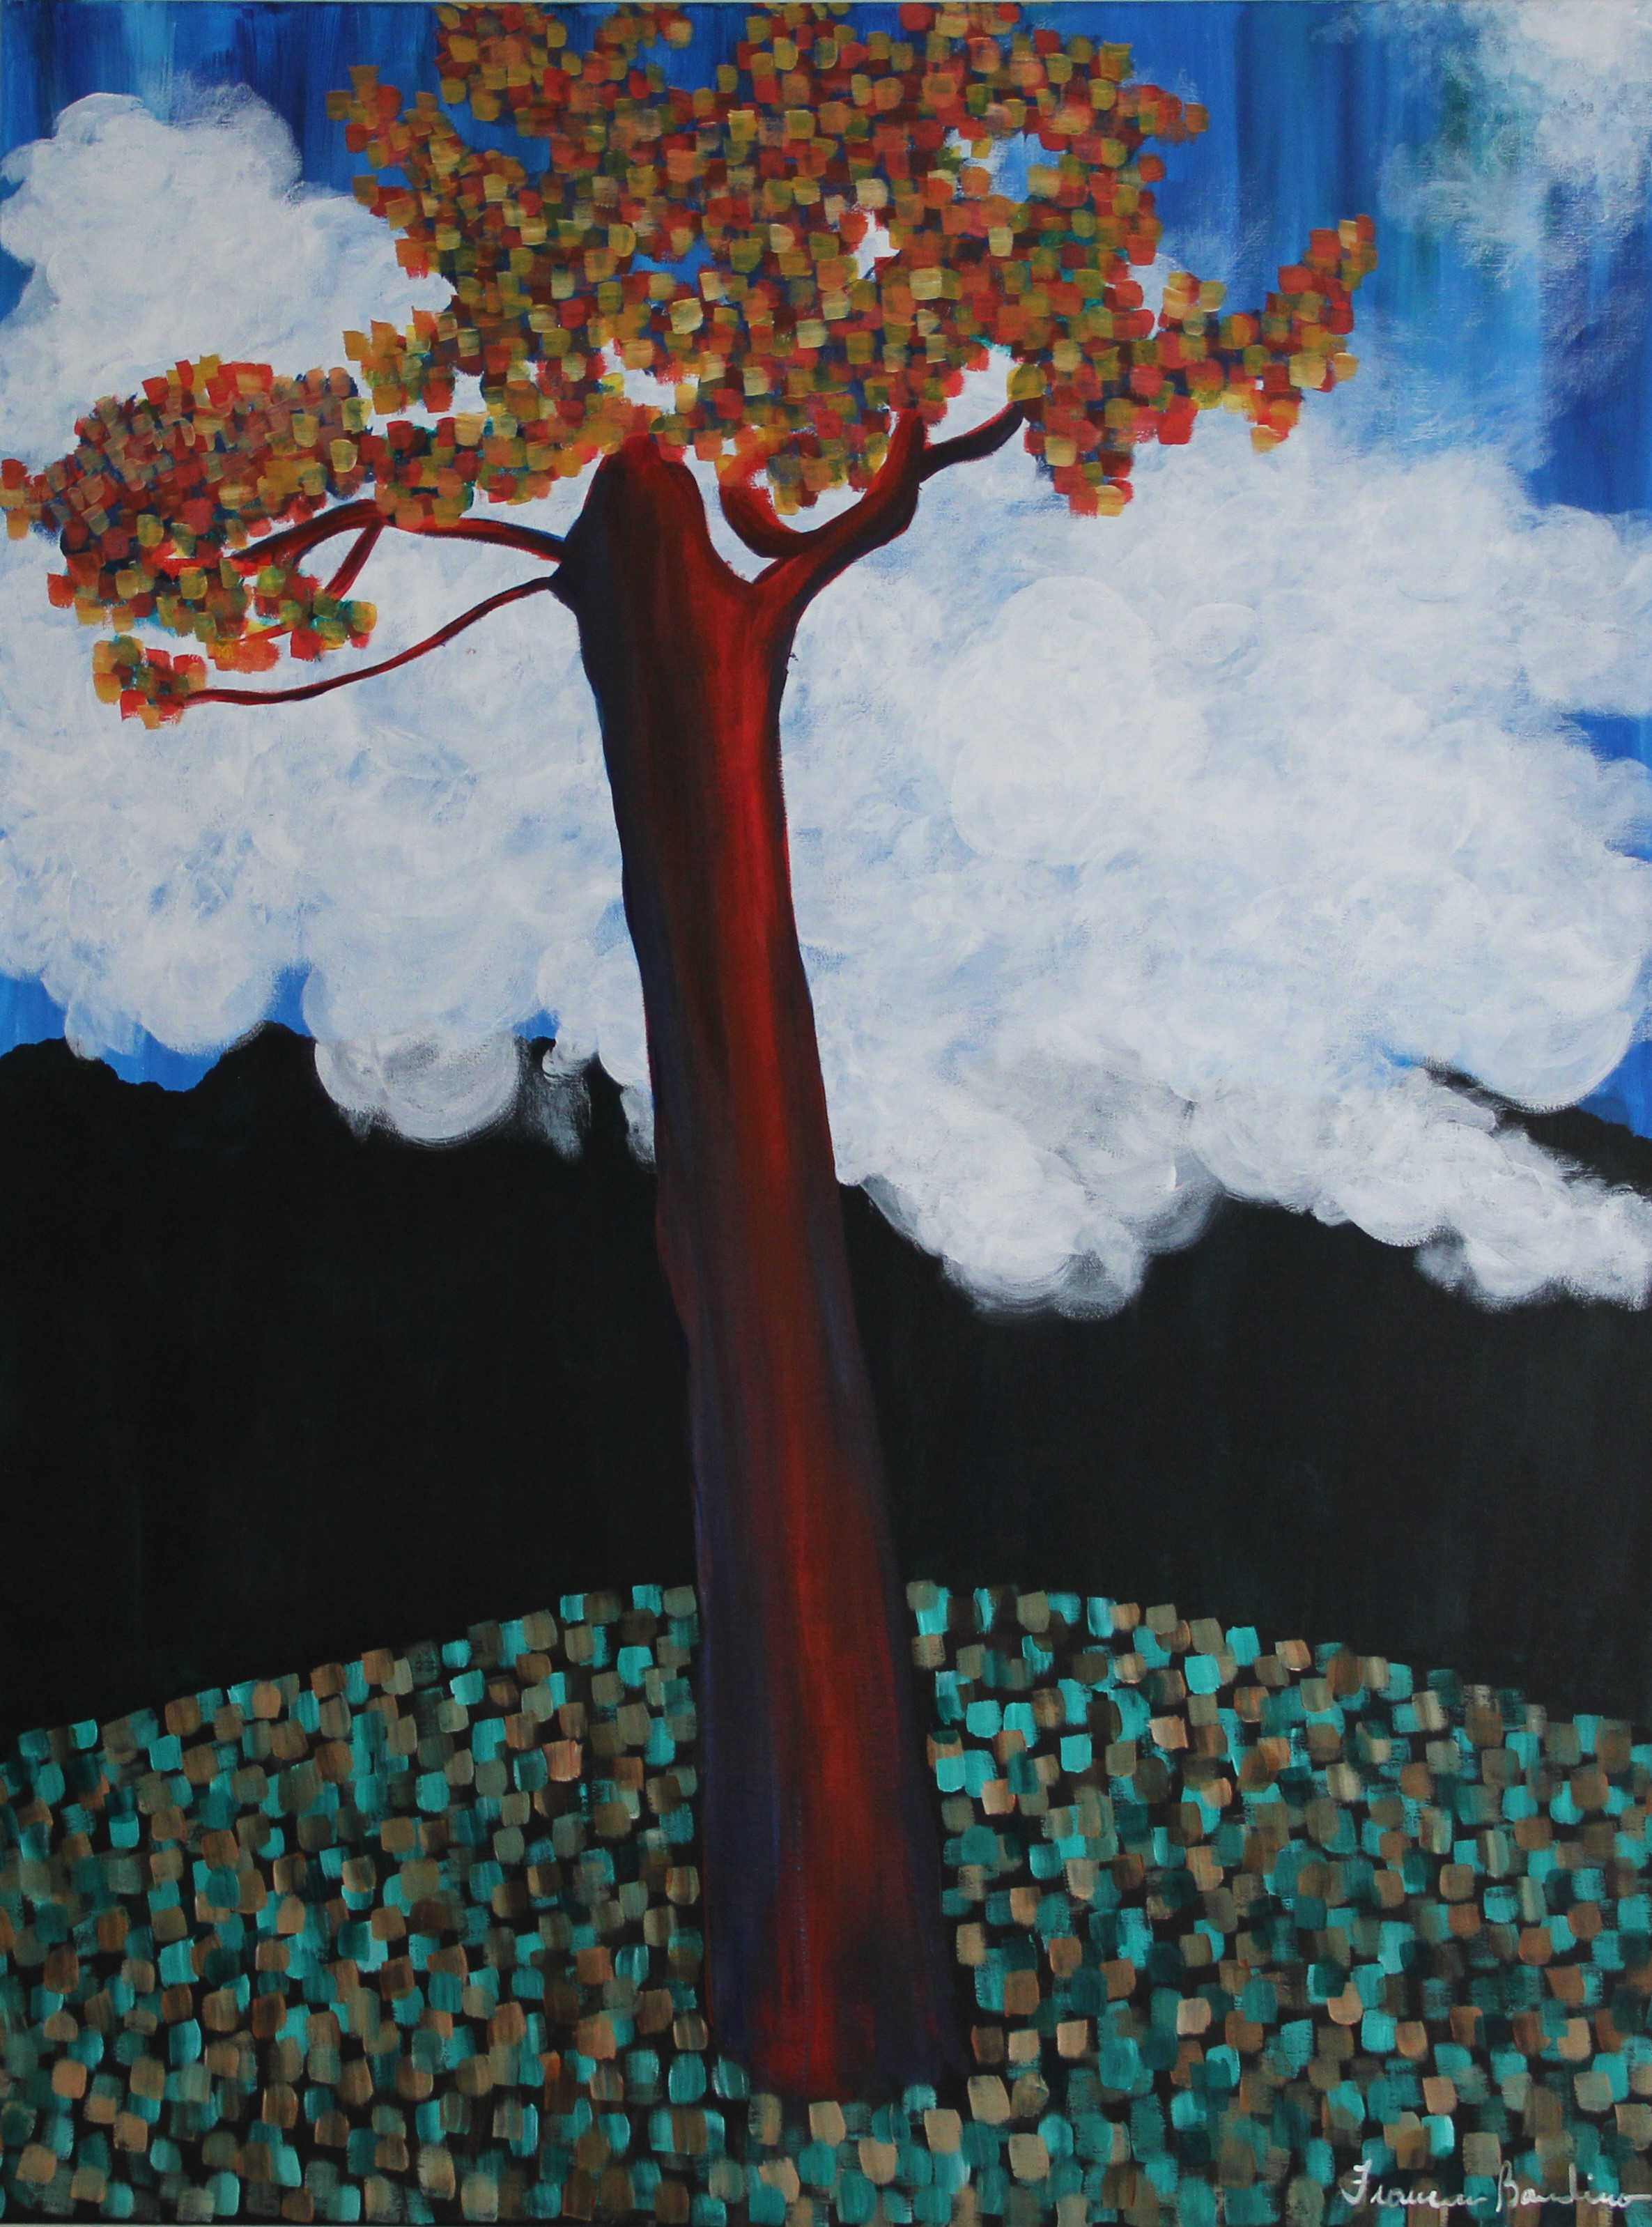 ©March 2017, Francesca Bandino, Tree and Mountains. Acrylic on Canvas, 40x30x.8 inches, $930.00